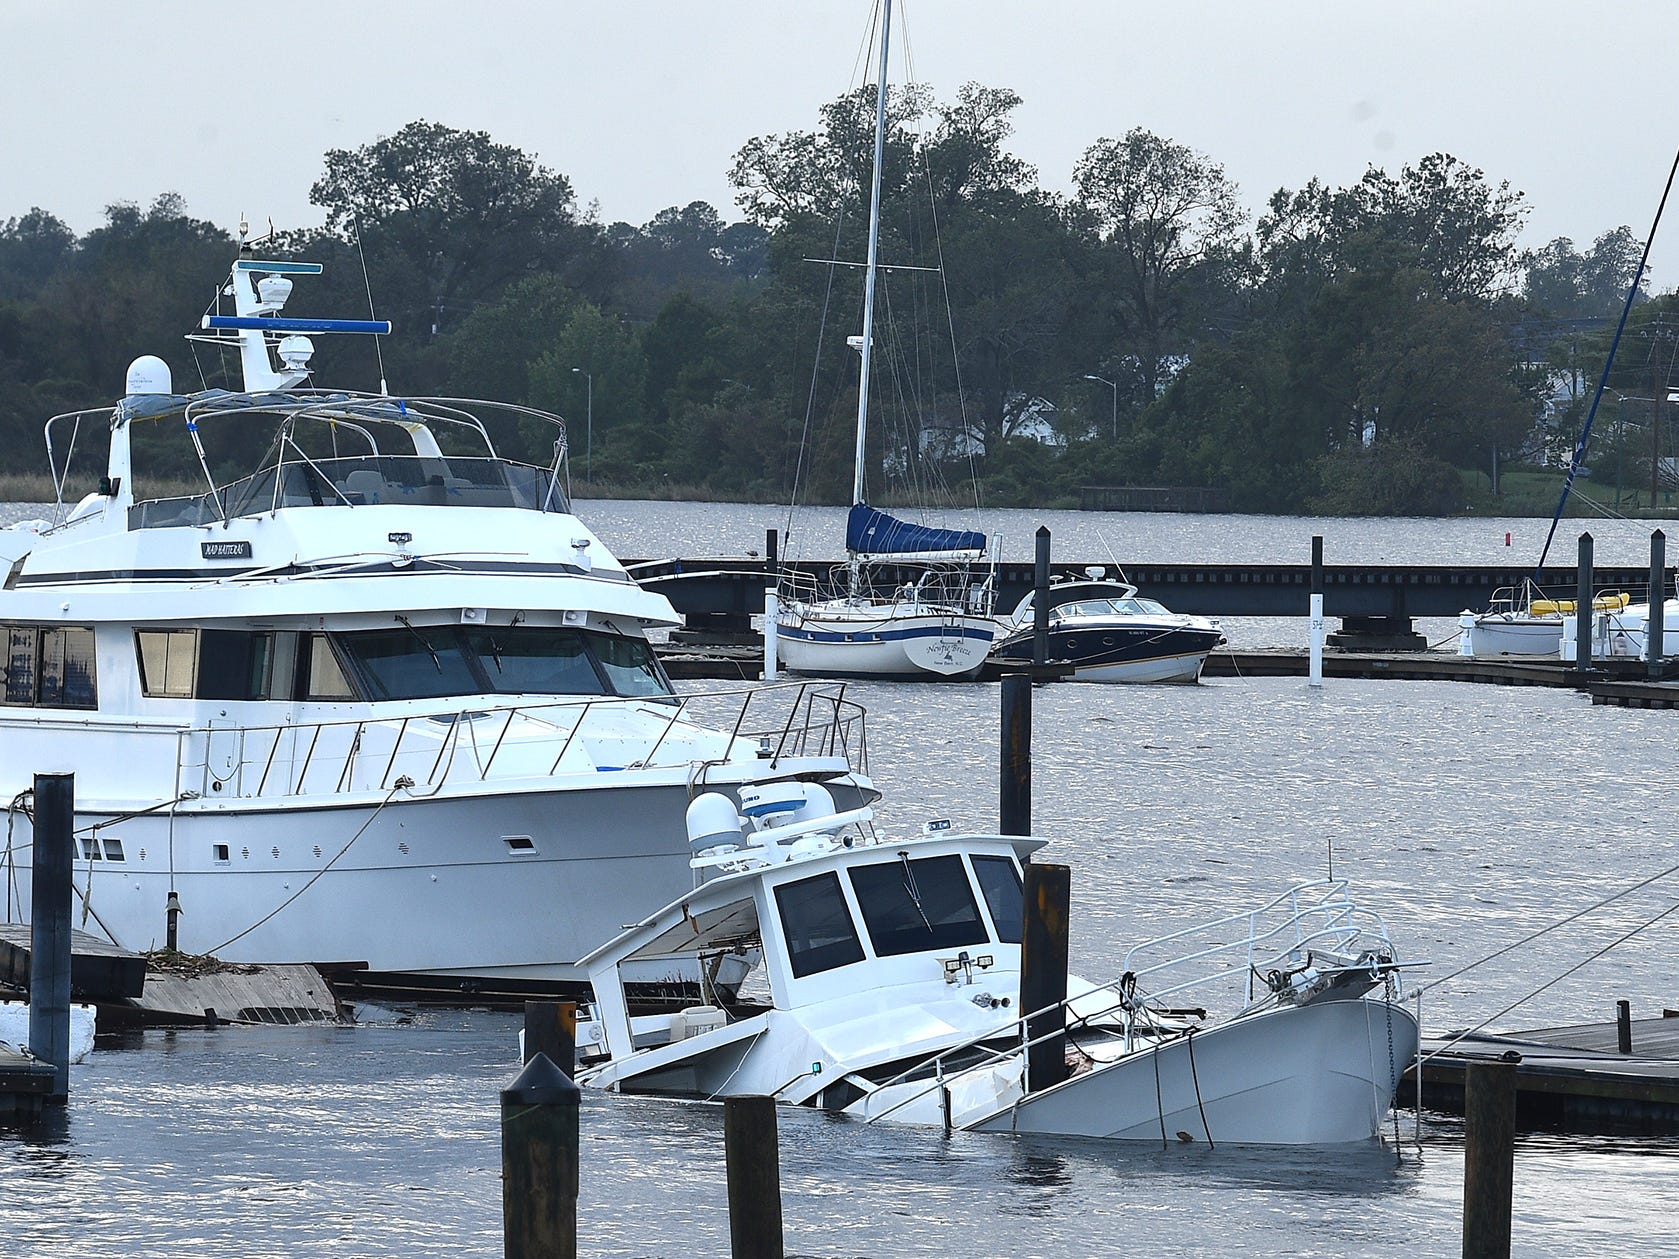 Some boats at a marina in New Bern, N.C., have been damaged by flooding and high winds from Hurricane Florence.